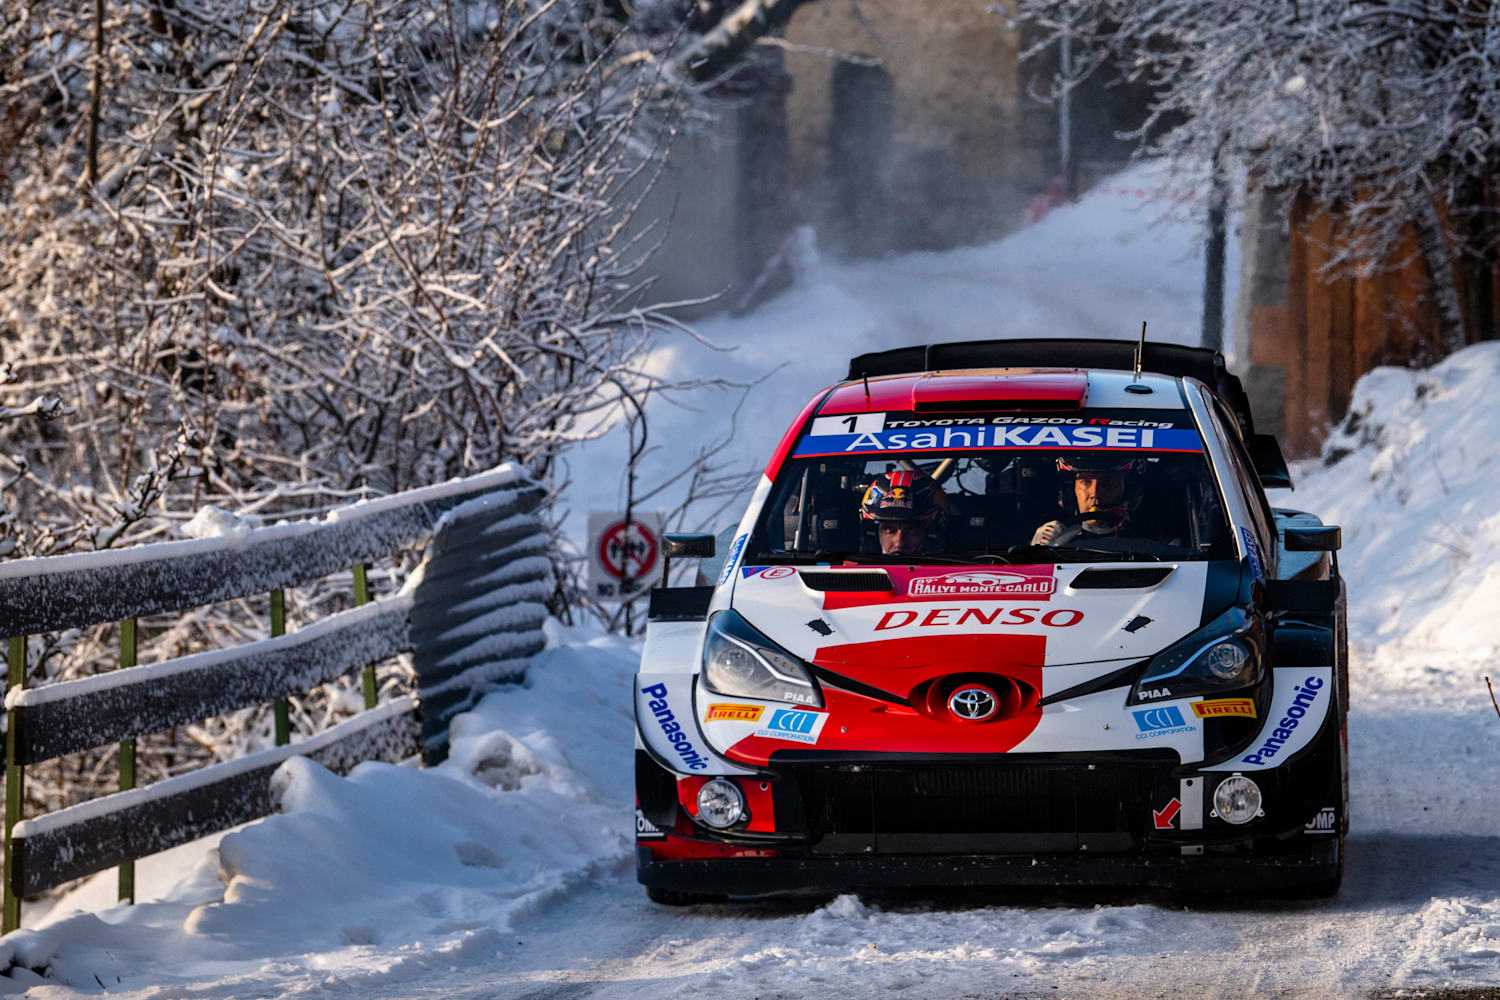 WRC Monte Carlo Rally 2021: Race report and results